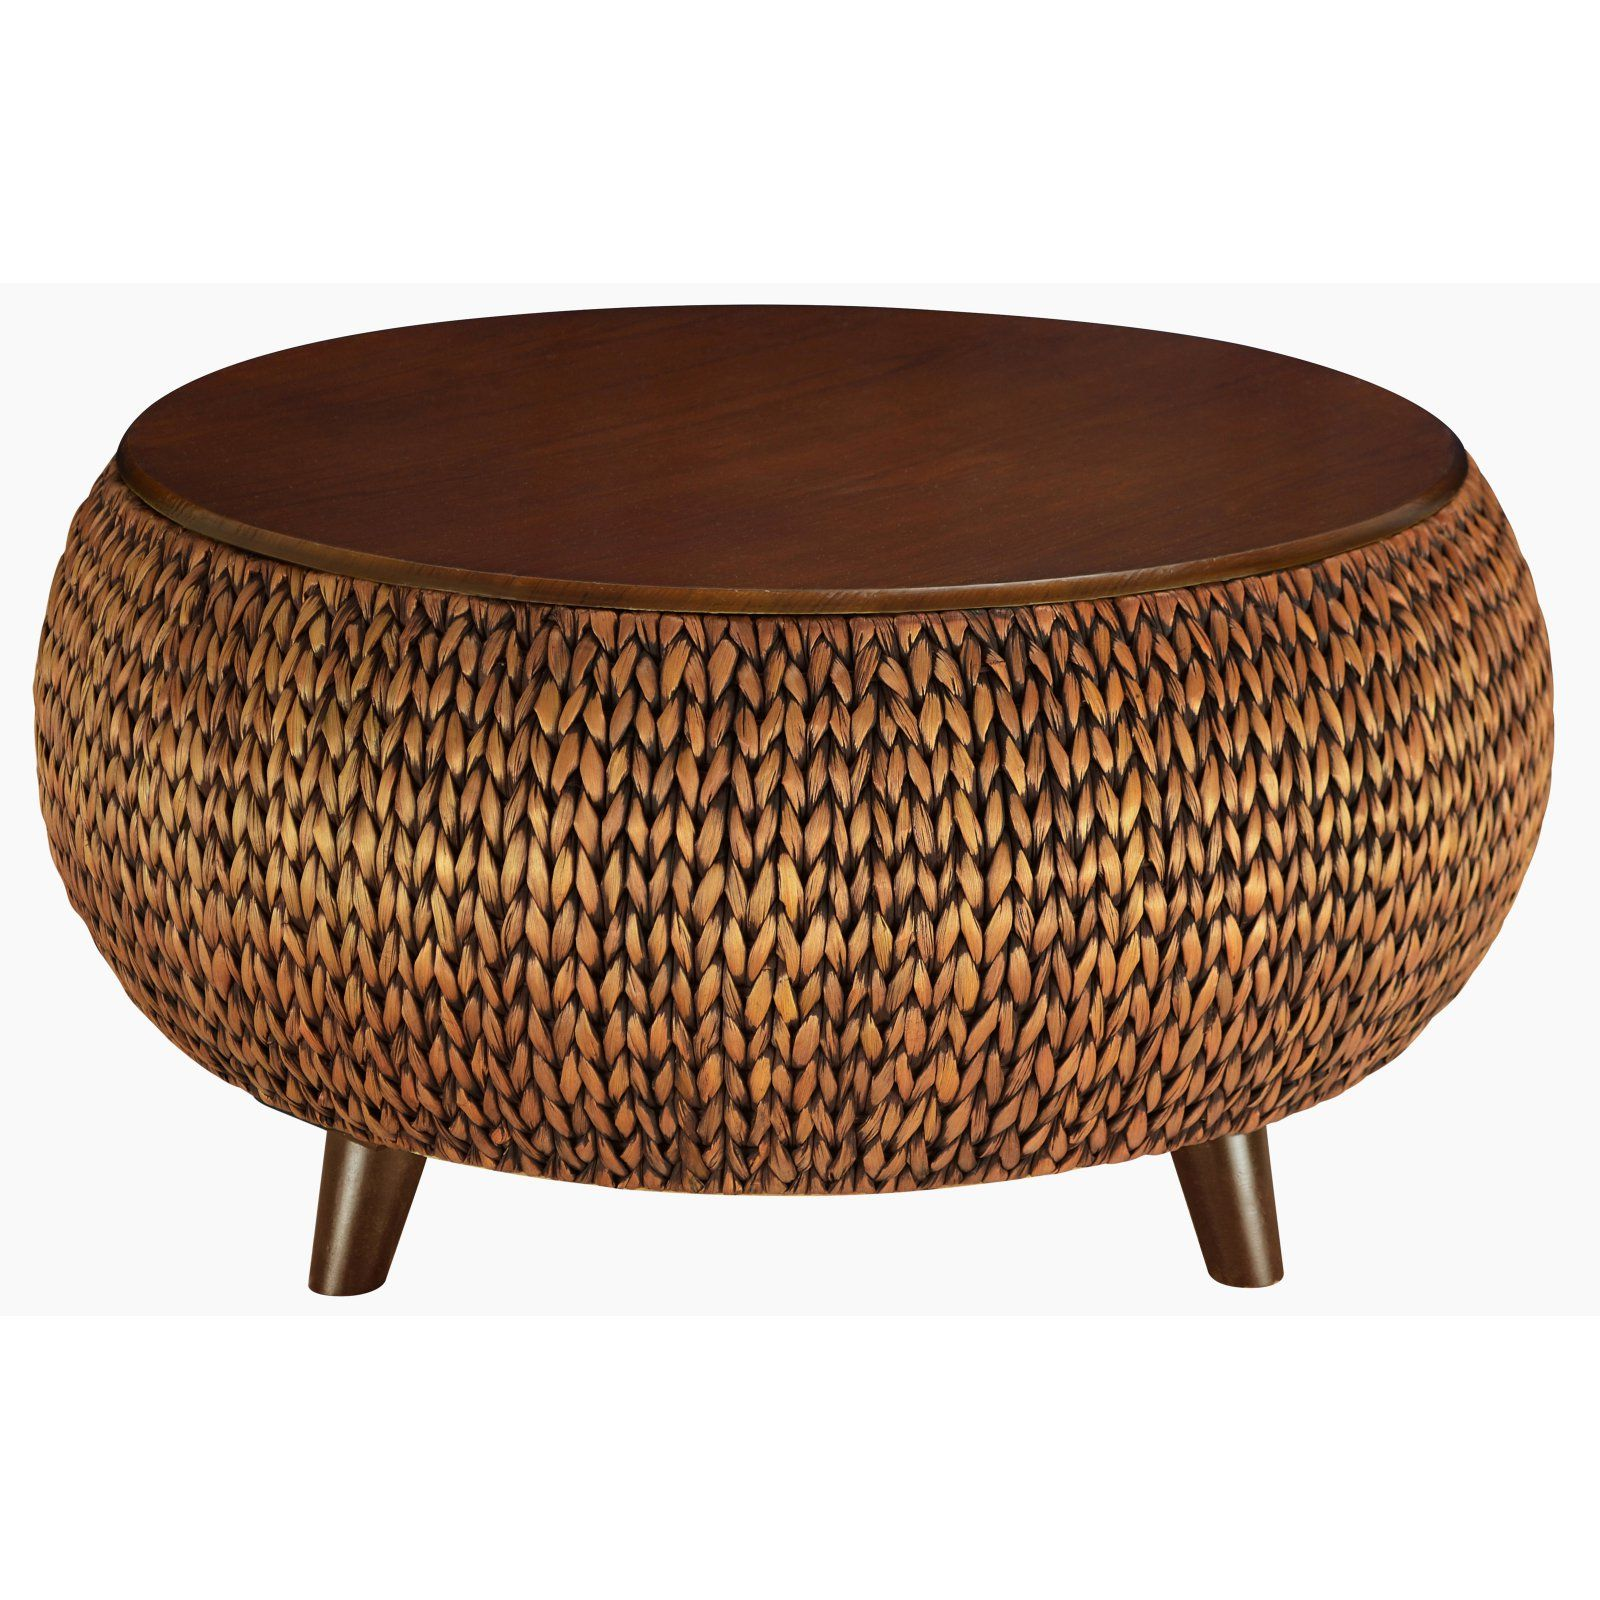 Gallerie Decor Bali Breeze Round Storage Table Coffee Table